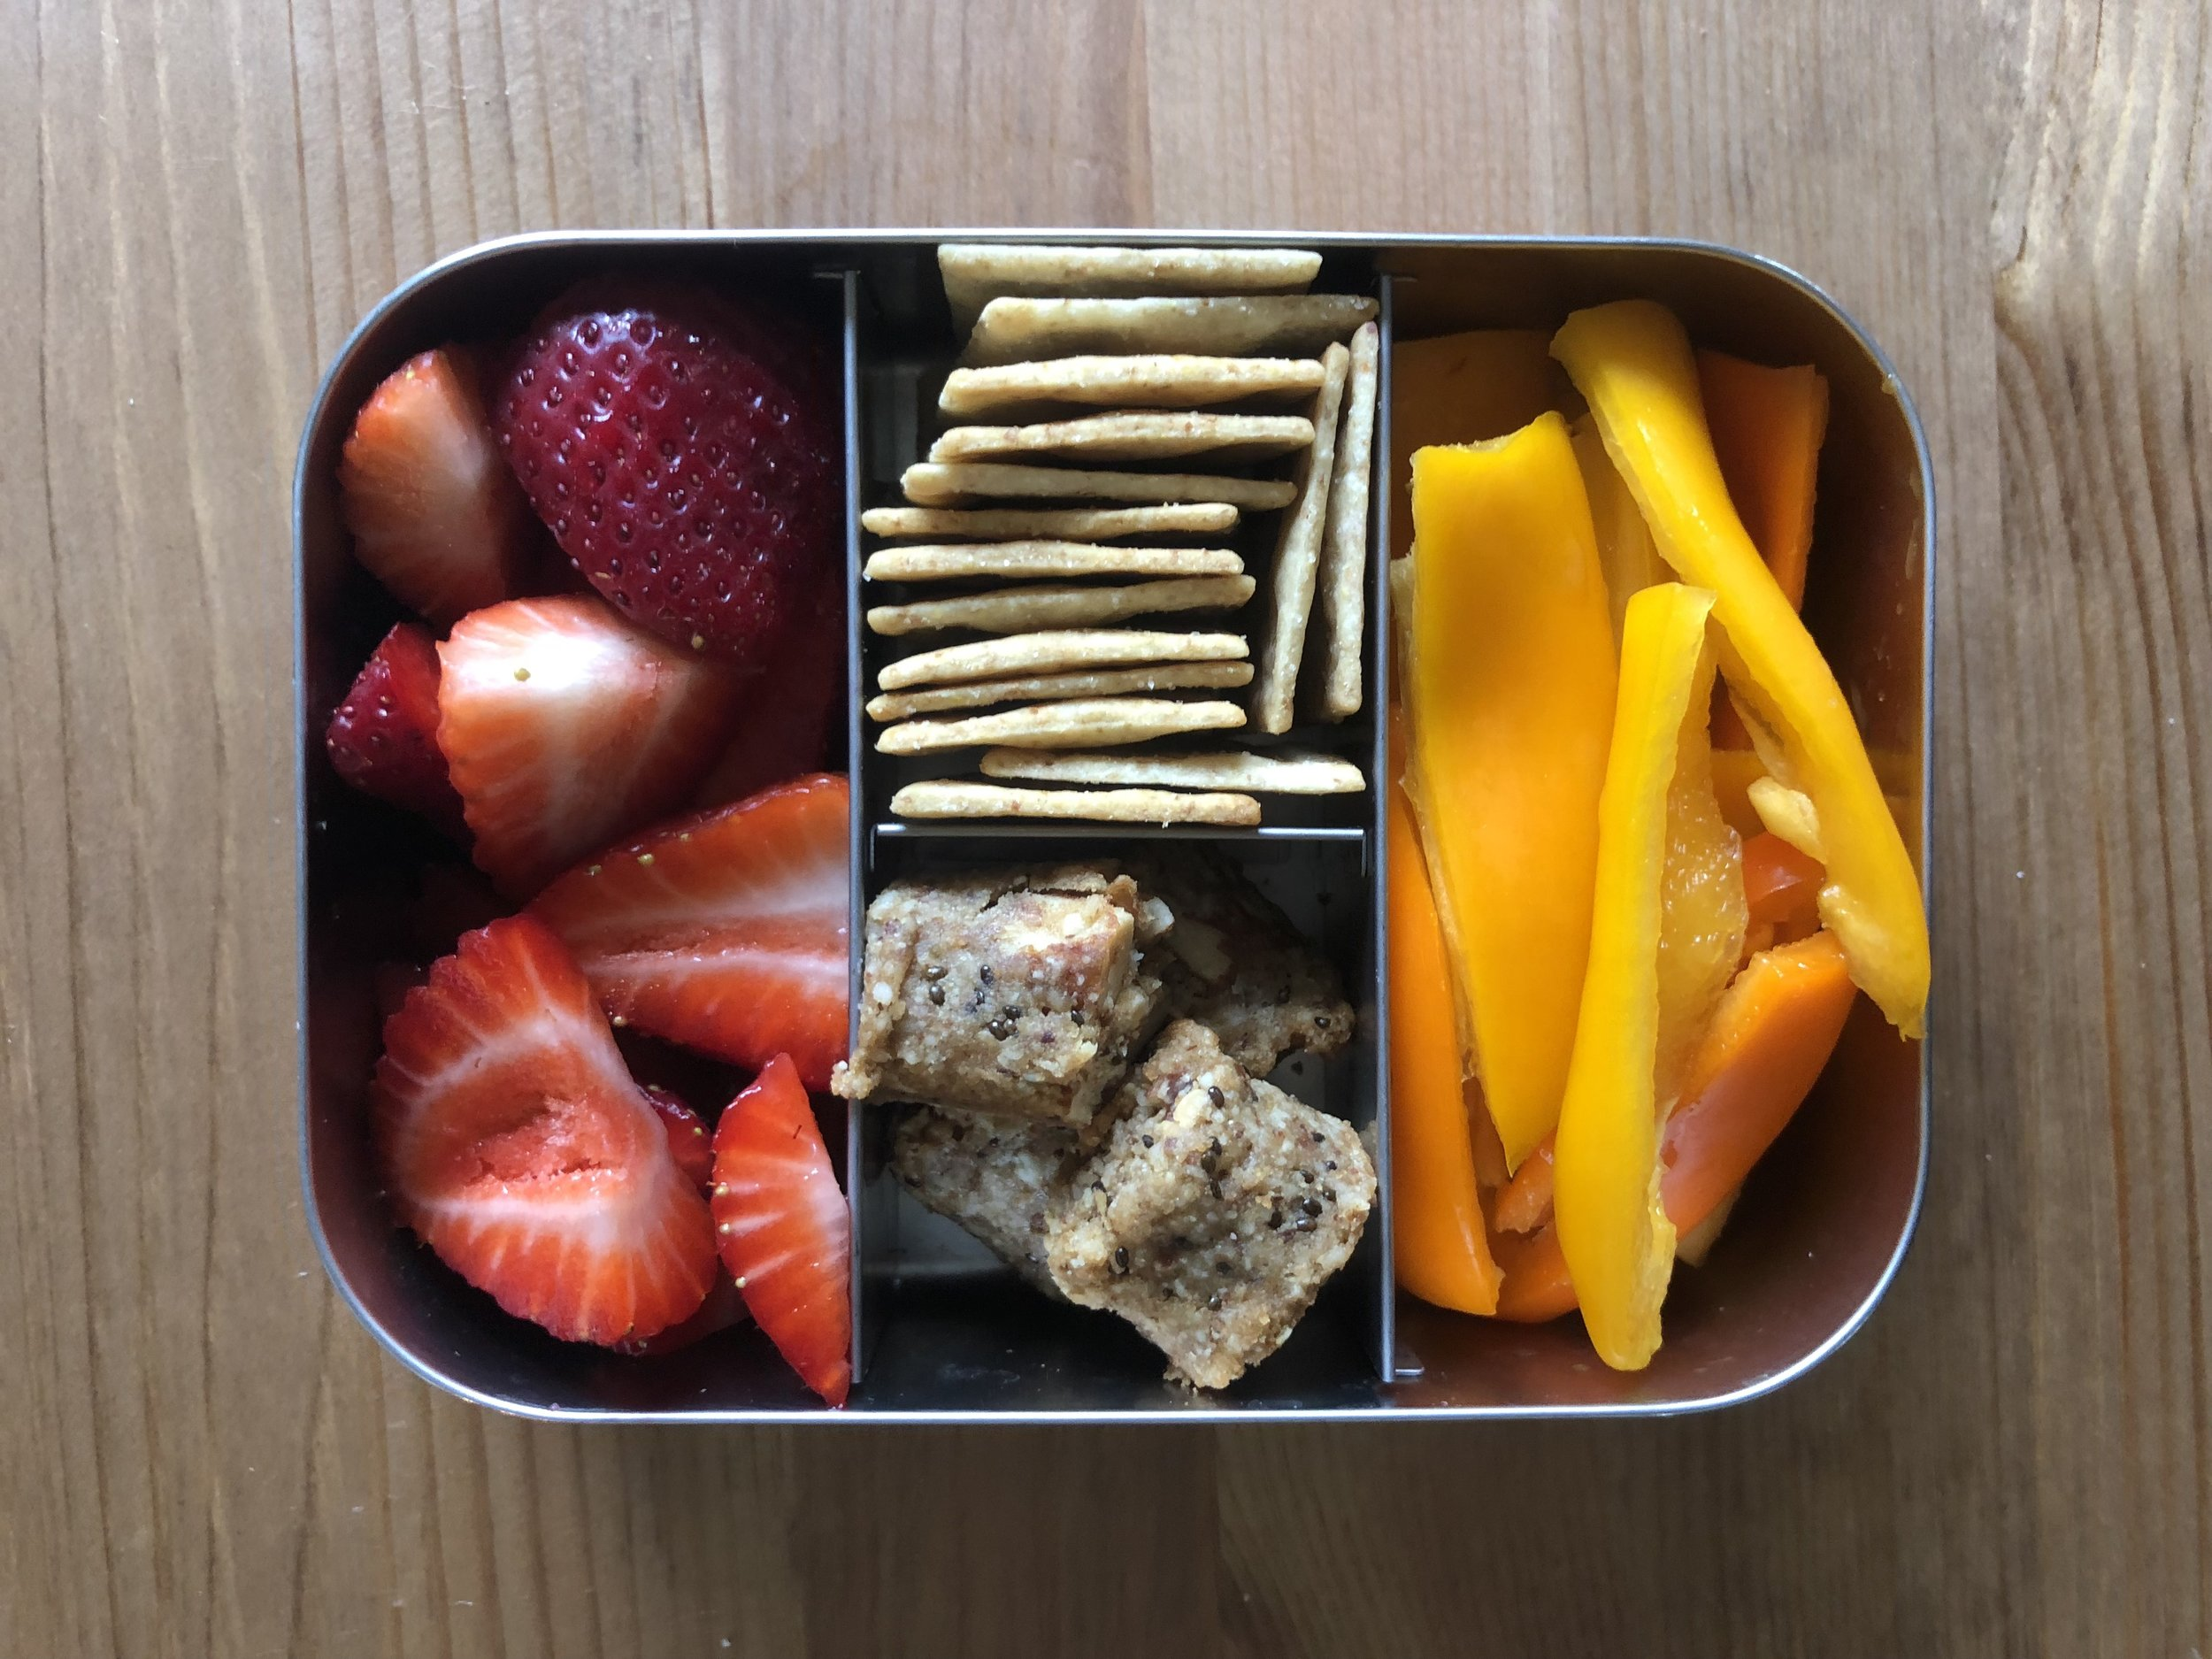 paleo bites, strawberries, crackers, peppers